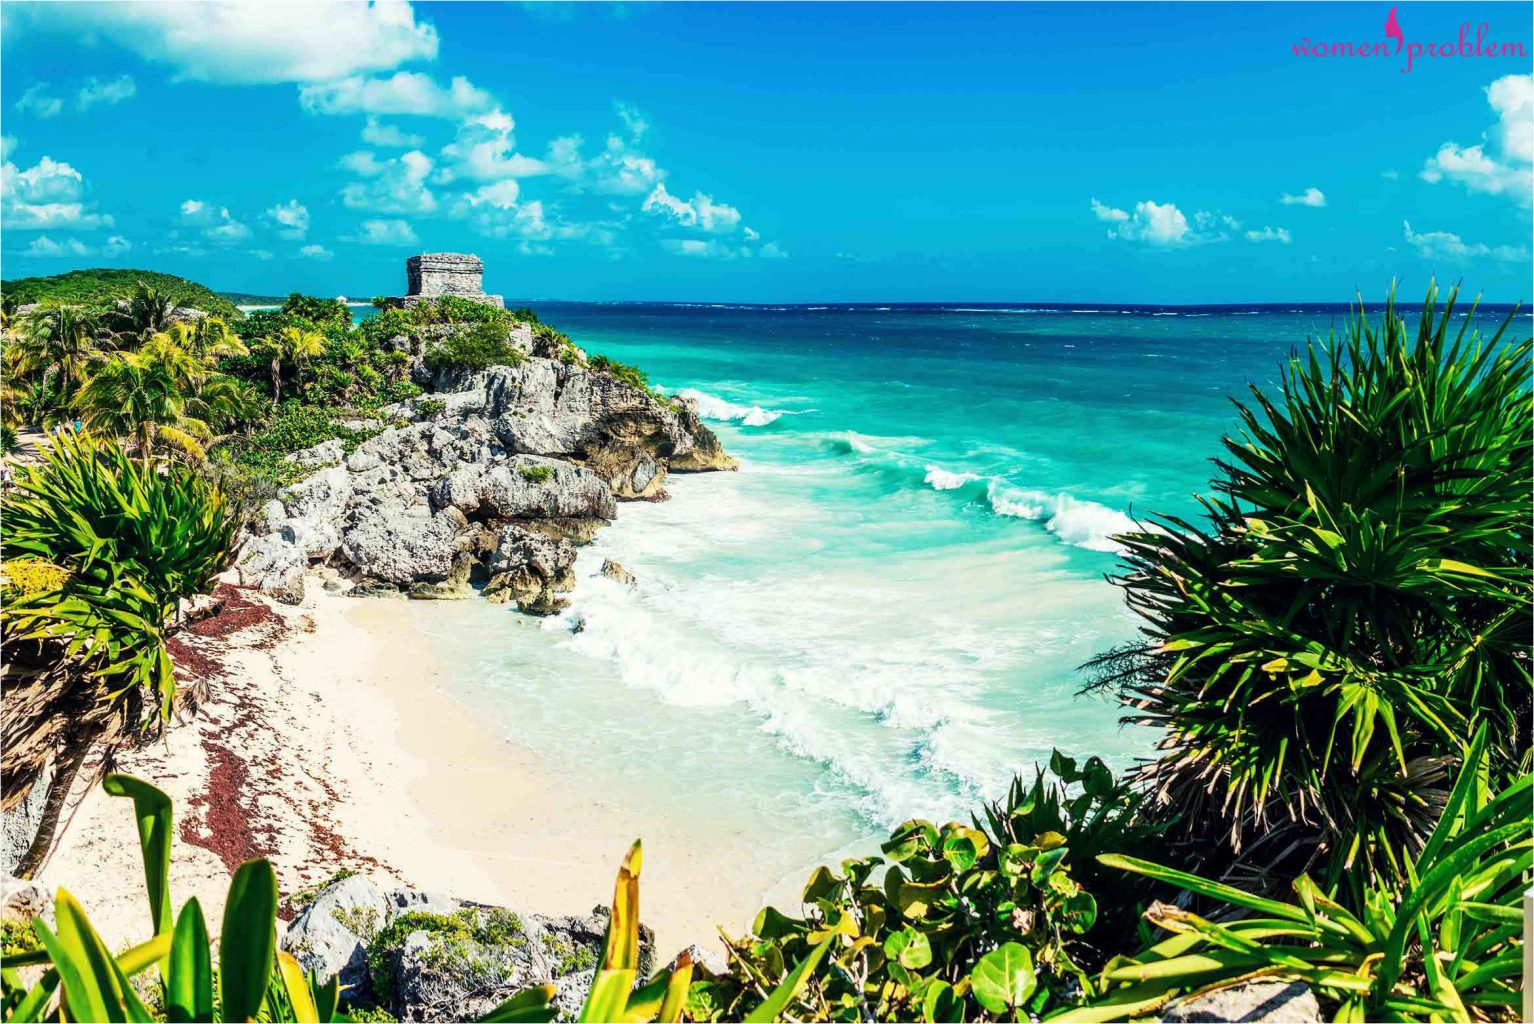 Mayan site Tulum on the Caribbean